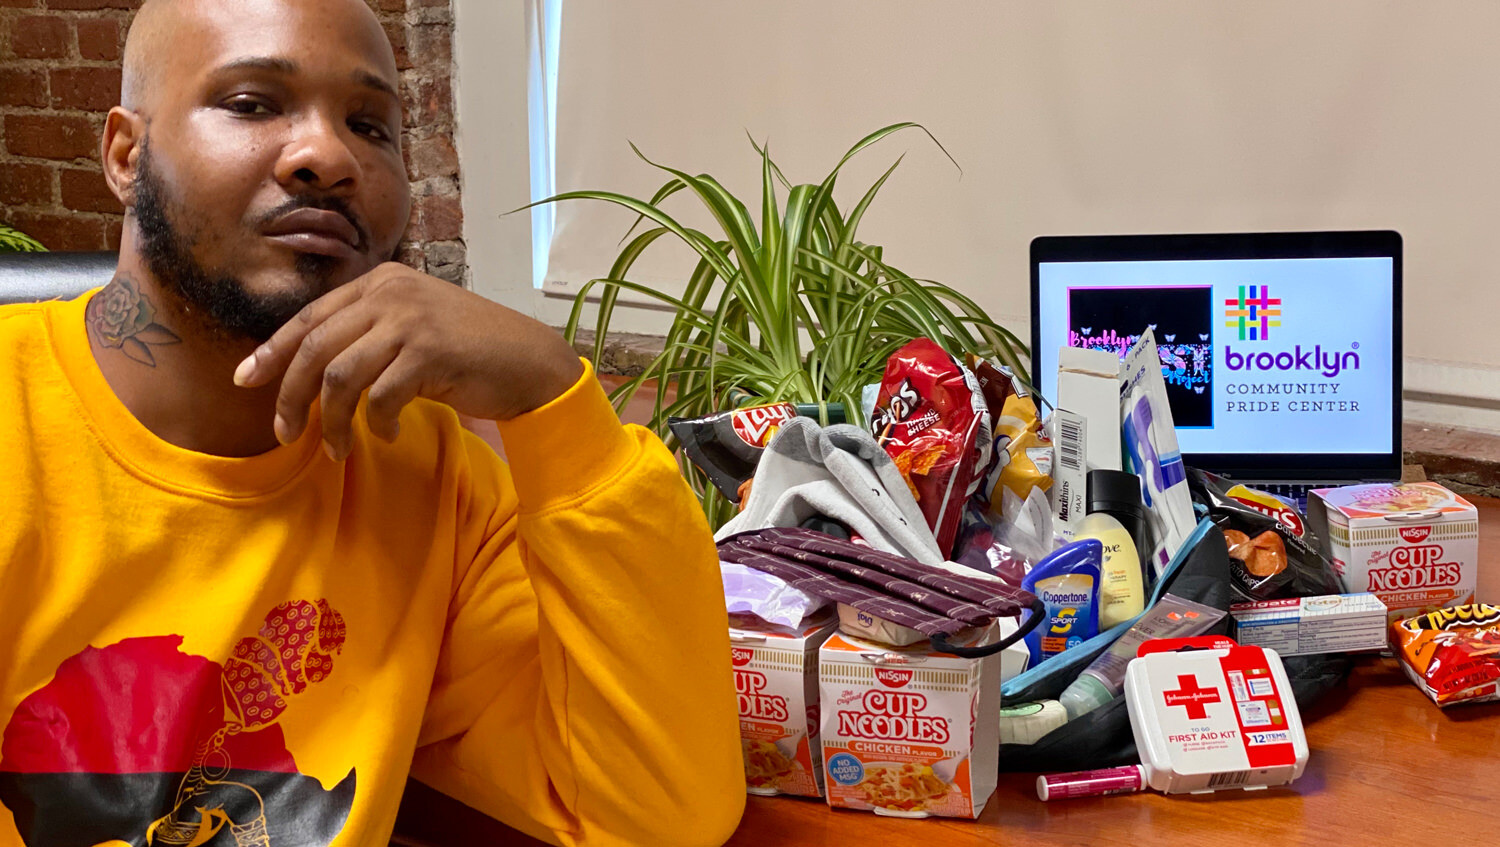 COVID-19 Relief Care Packages for Trans & Non-binary P.O.C. at Brooklyn Community Pride Center